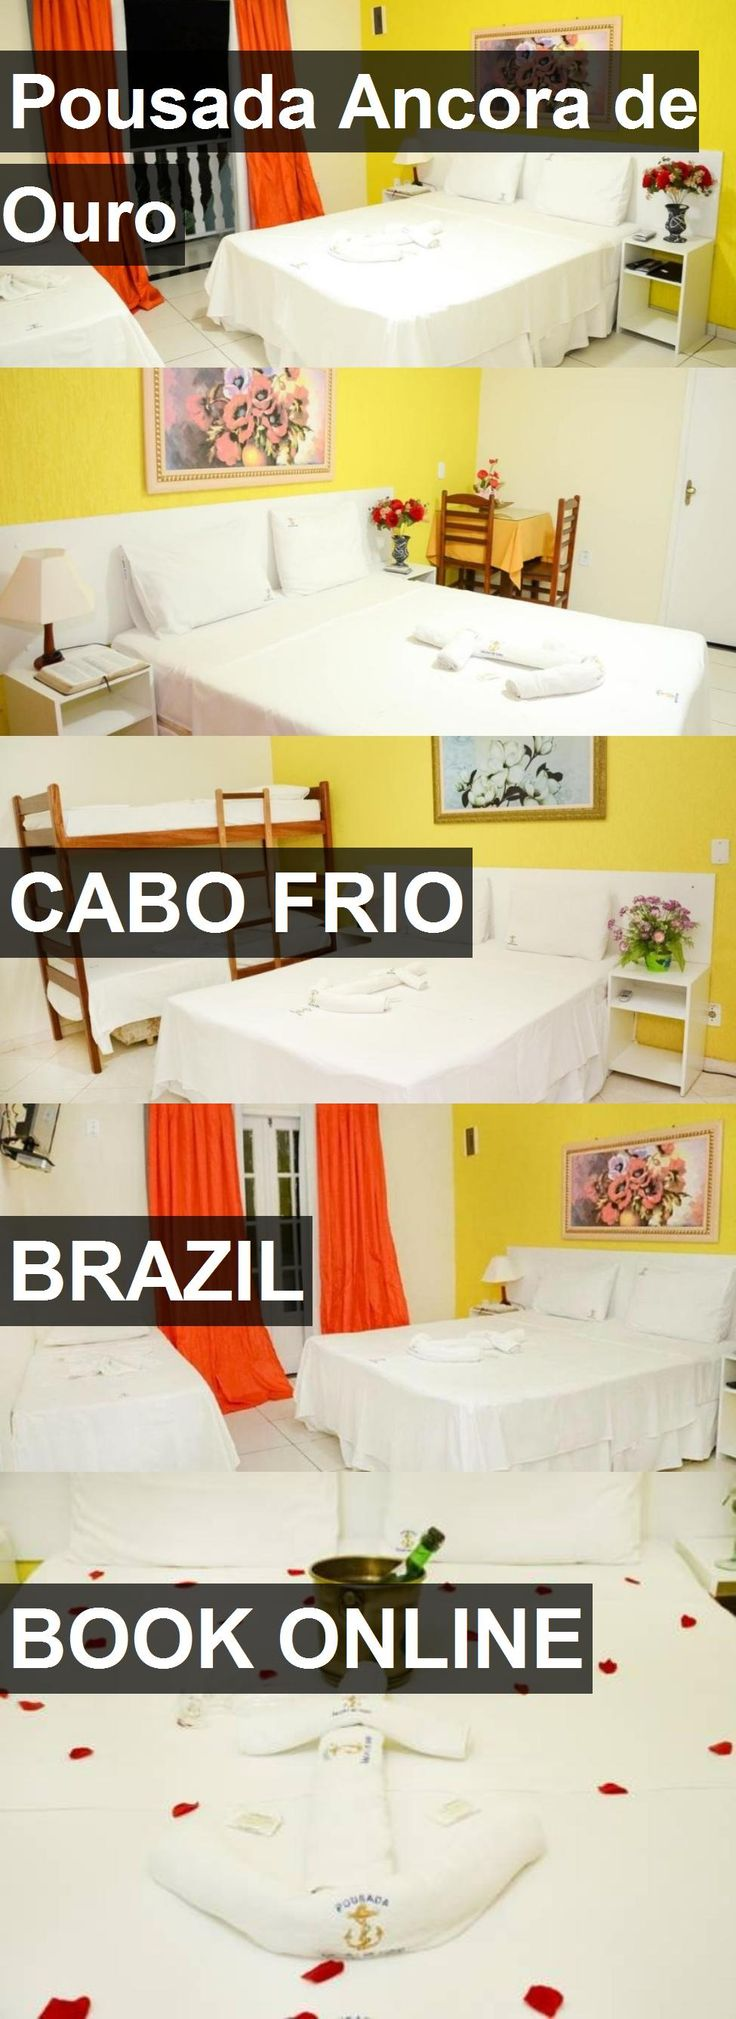 Hotel Pousada Ancora de Ouro in Cabo Frio, Brazil. For more information, photos, reviews and best prices please follow the link. #Brazil #CaboFrio #hotel #travel #vacation